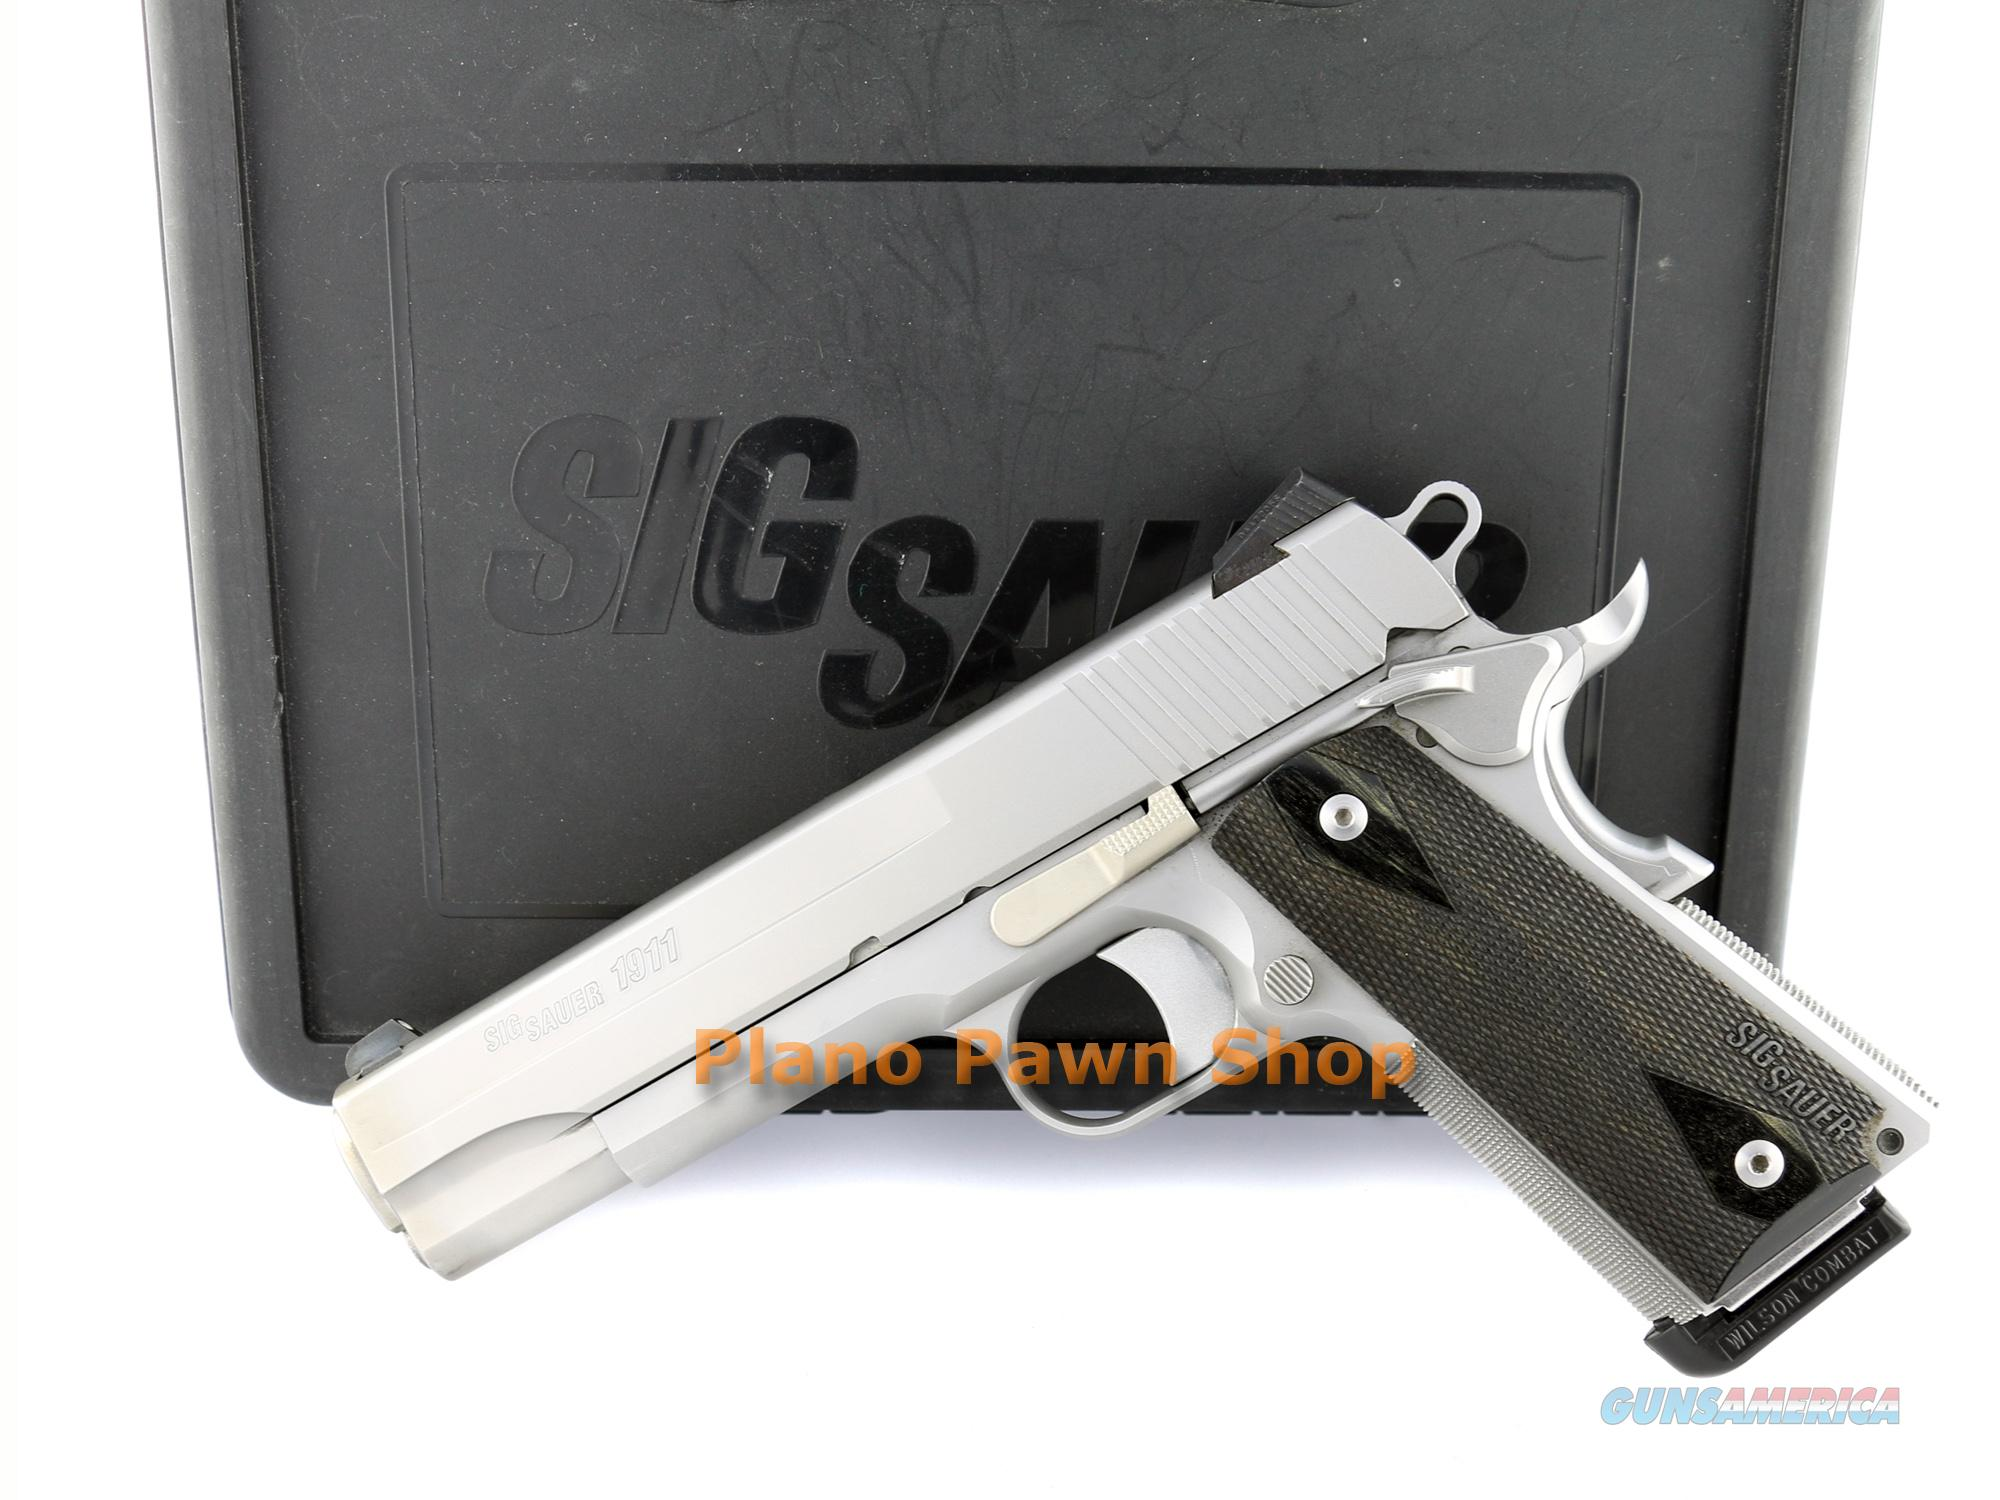 SIG Sauer Model 1911 .45 ACP Stainless Steel with Night Sights in Case with 1 Mag  Guns > Pistols > Sig - Sauer/Sigarms Pistols > 1911